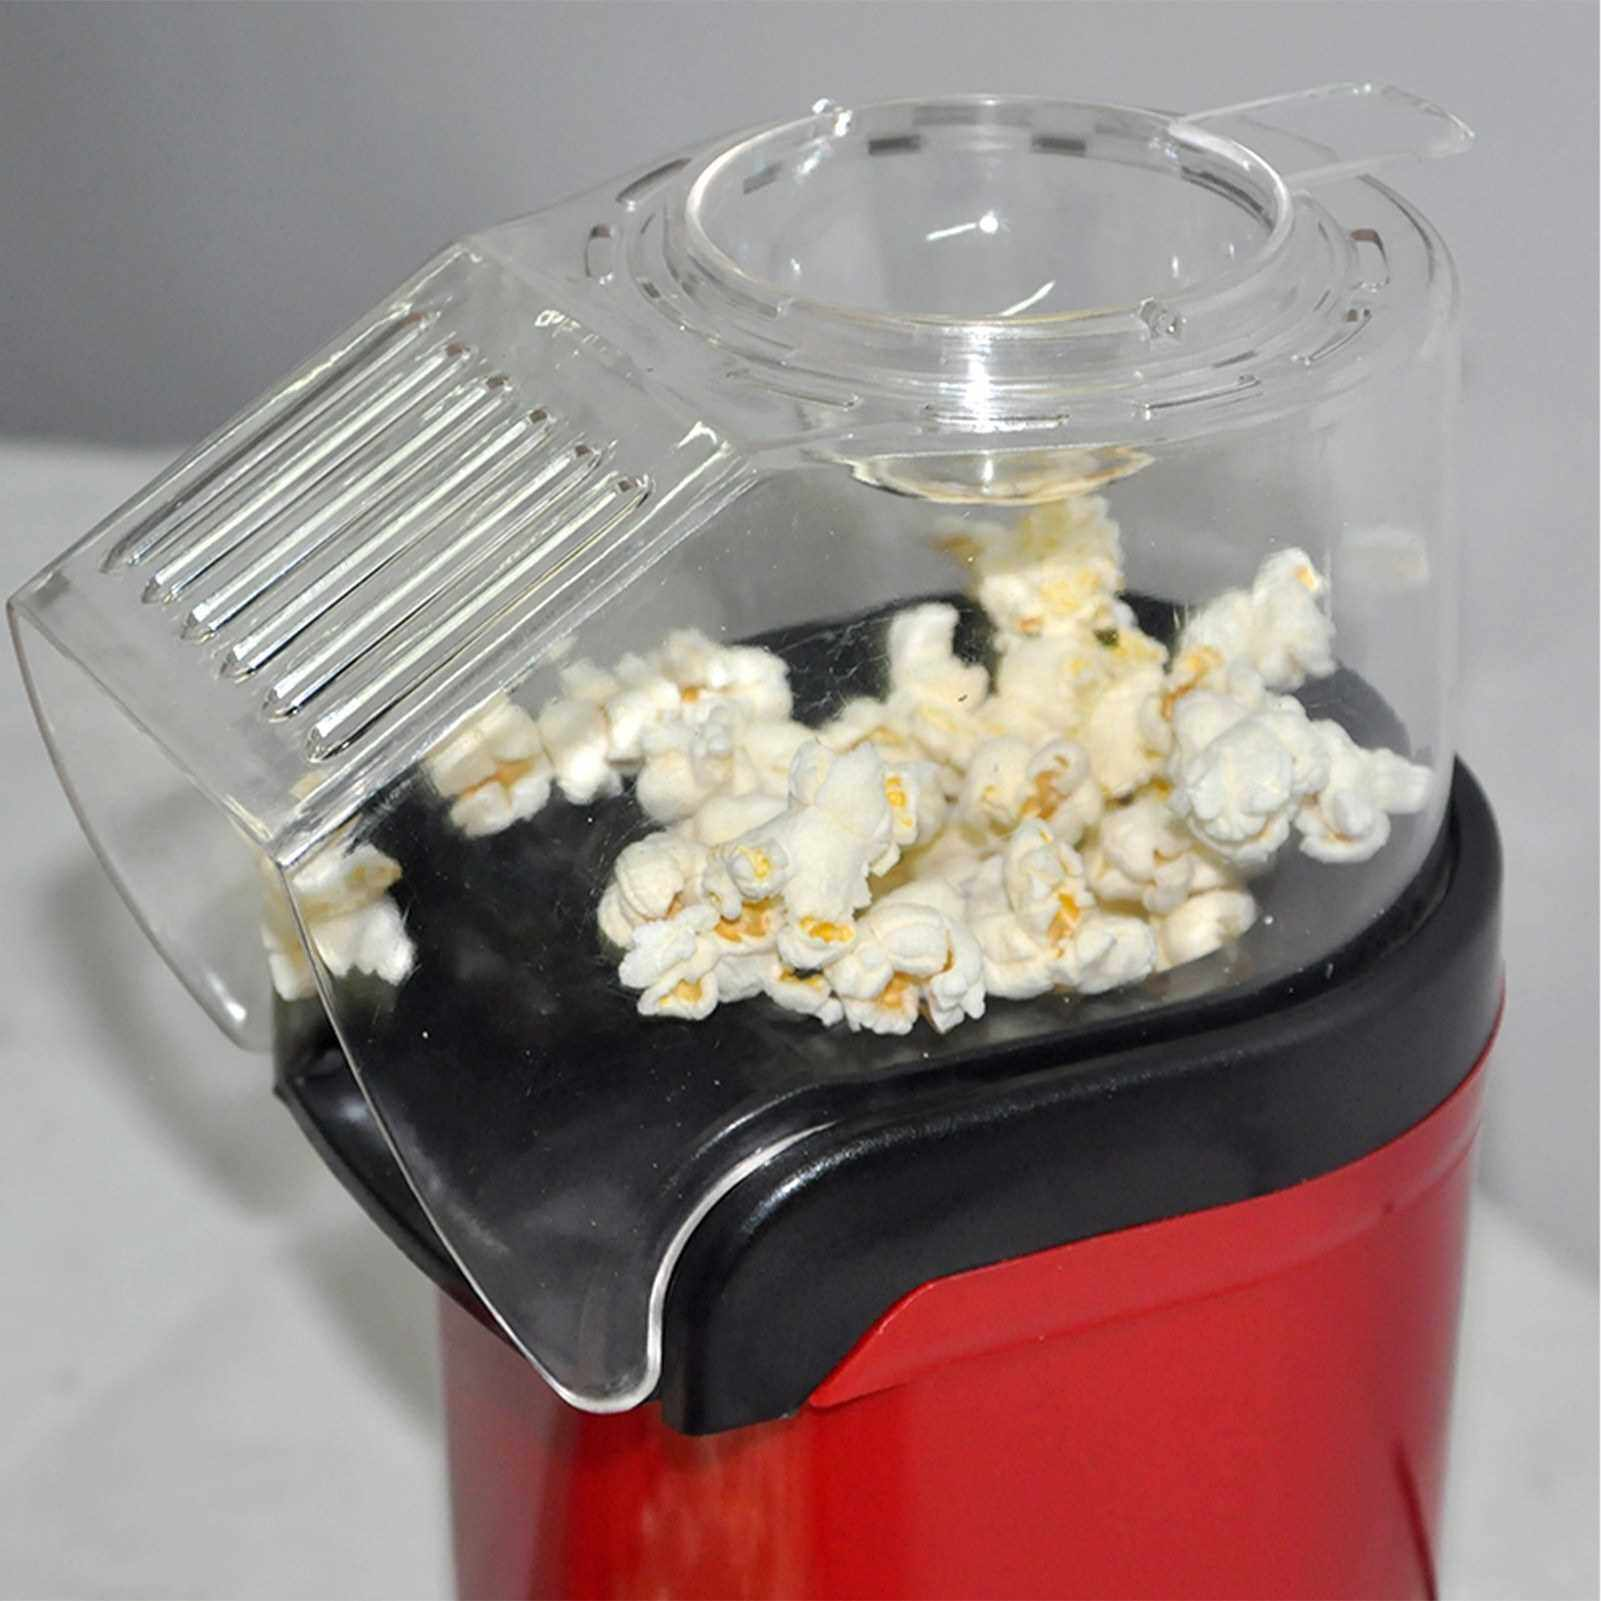 Best Selling 1200W Popcorn Popper Popcorn Maker Electric Popcorn Machine No Oil Needed for Home Family Kids (Red)